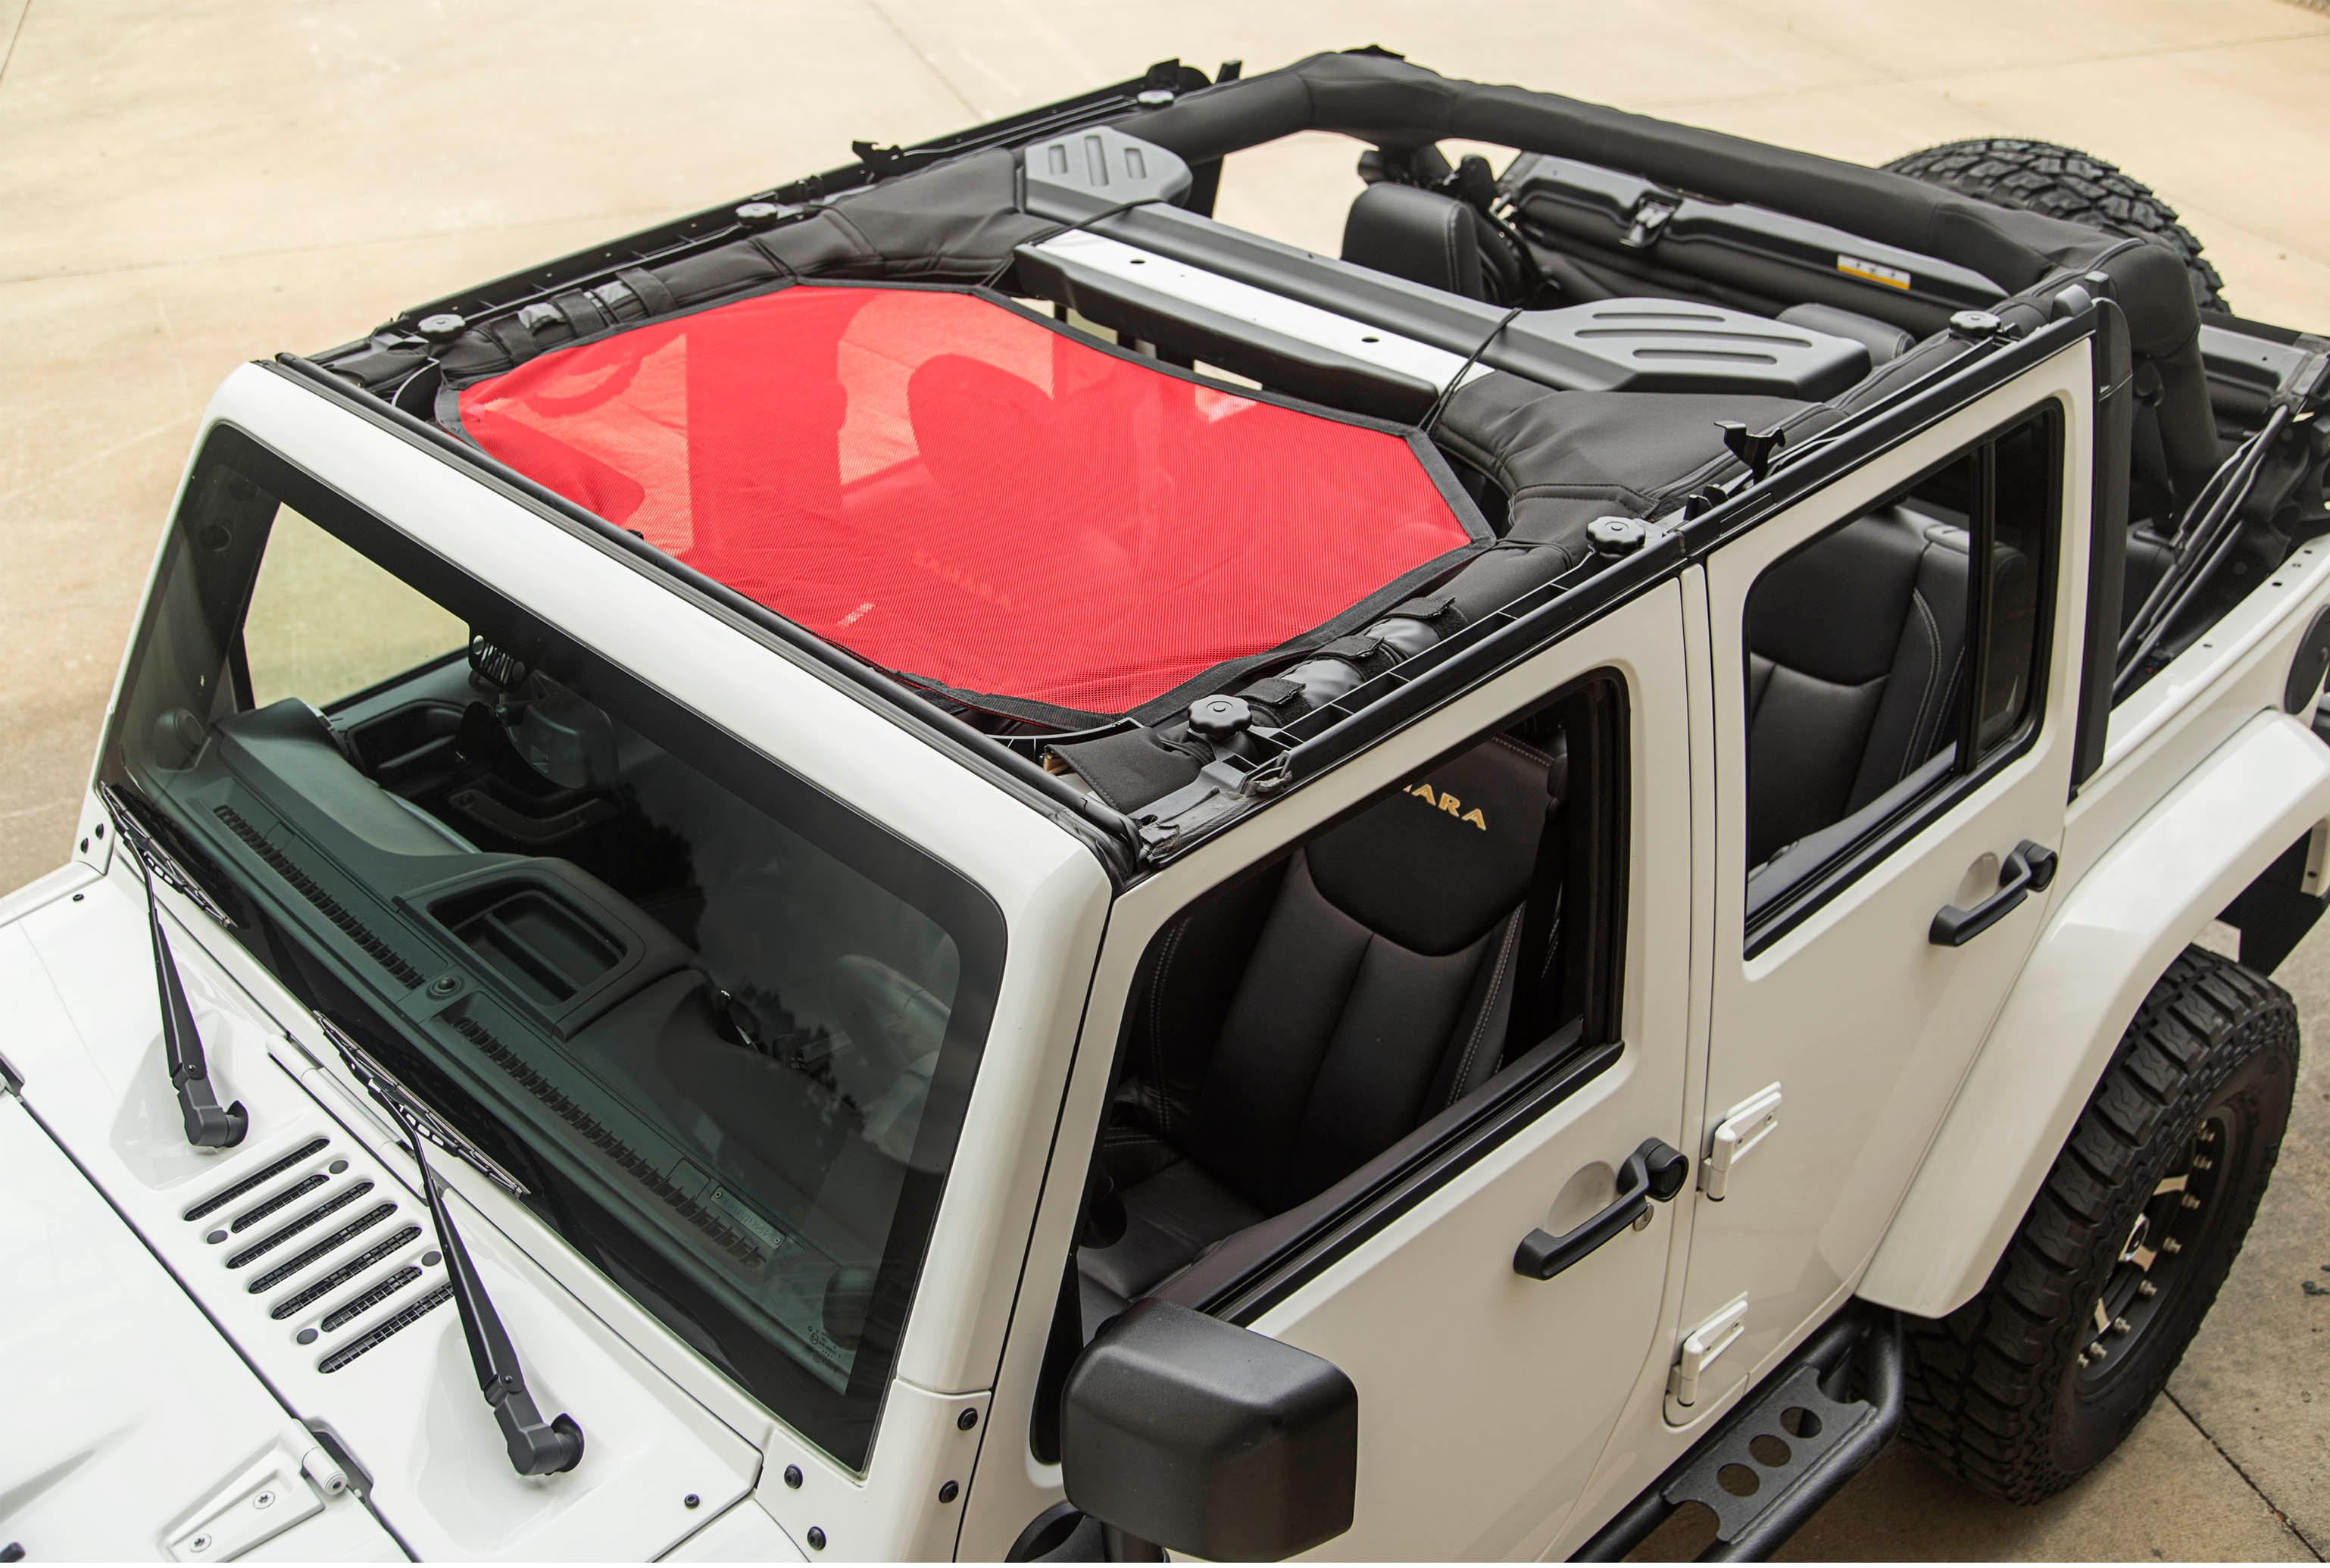 running brand quadratec led jeep system rostra controls and best selling light precision daytime parts accessories